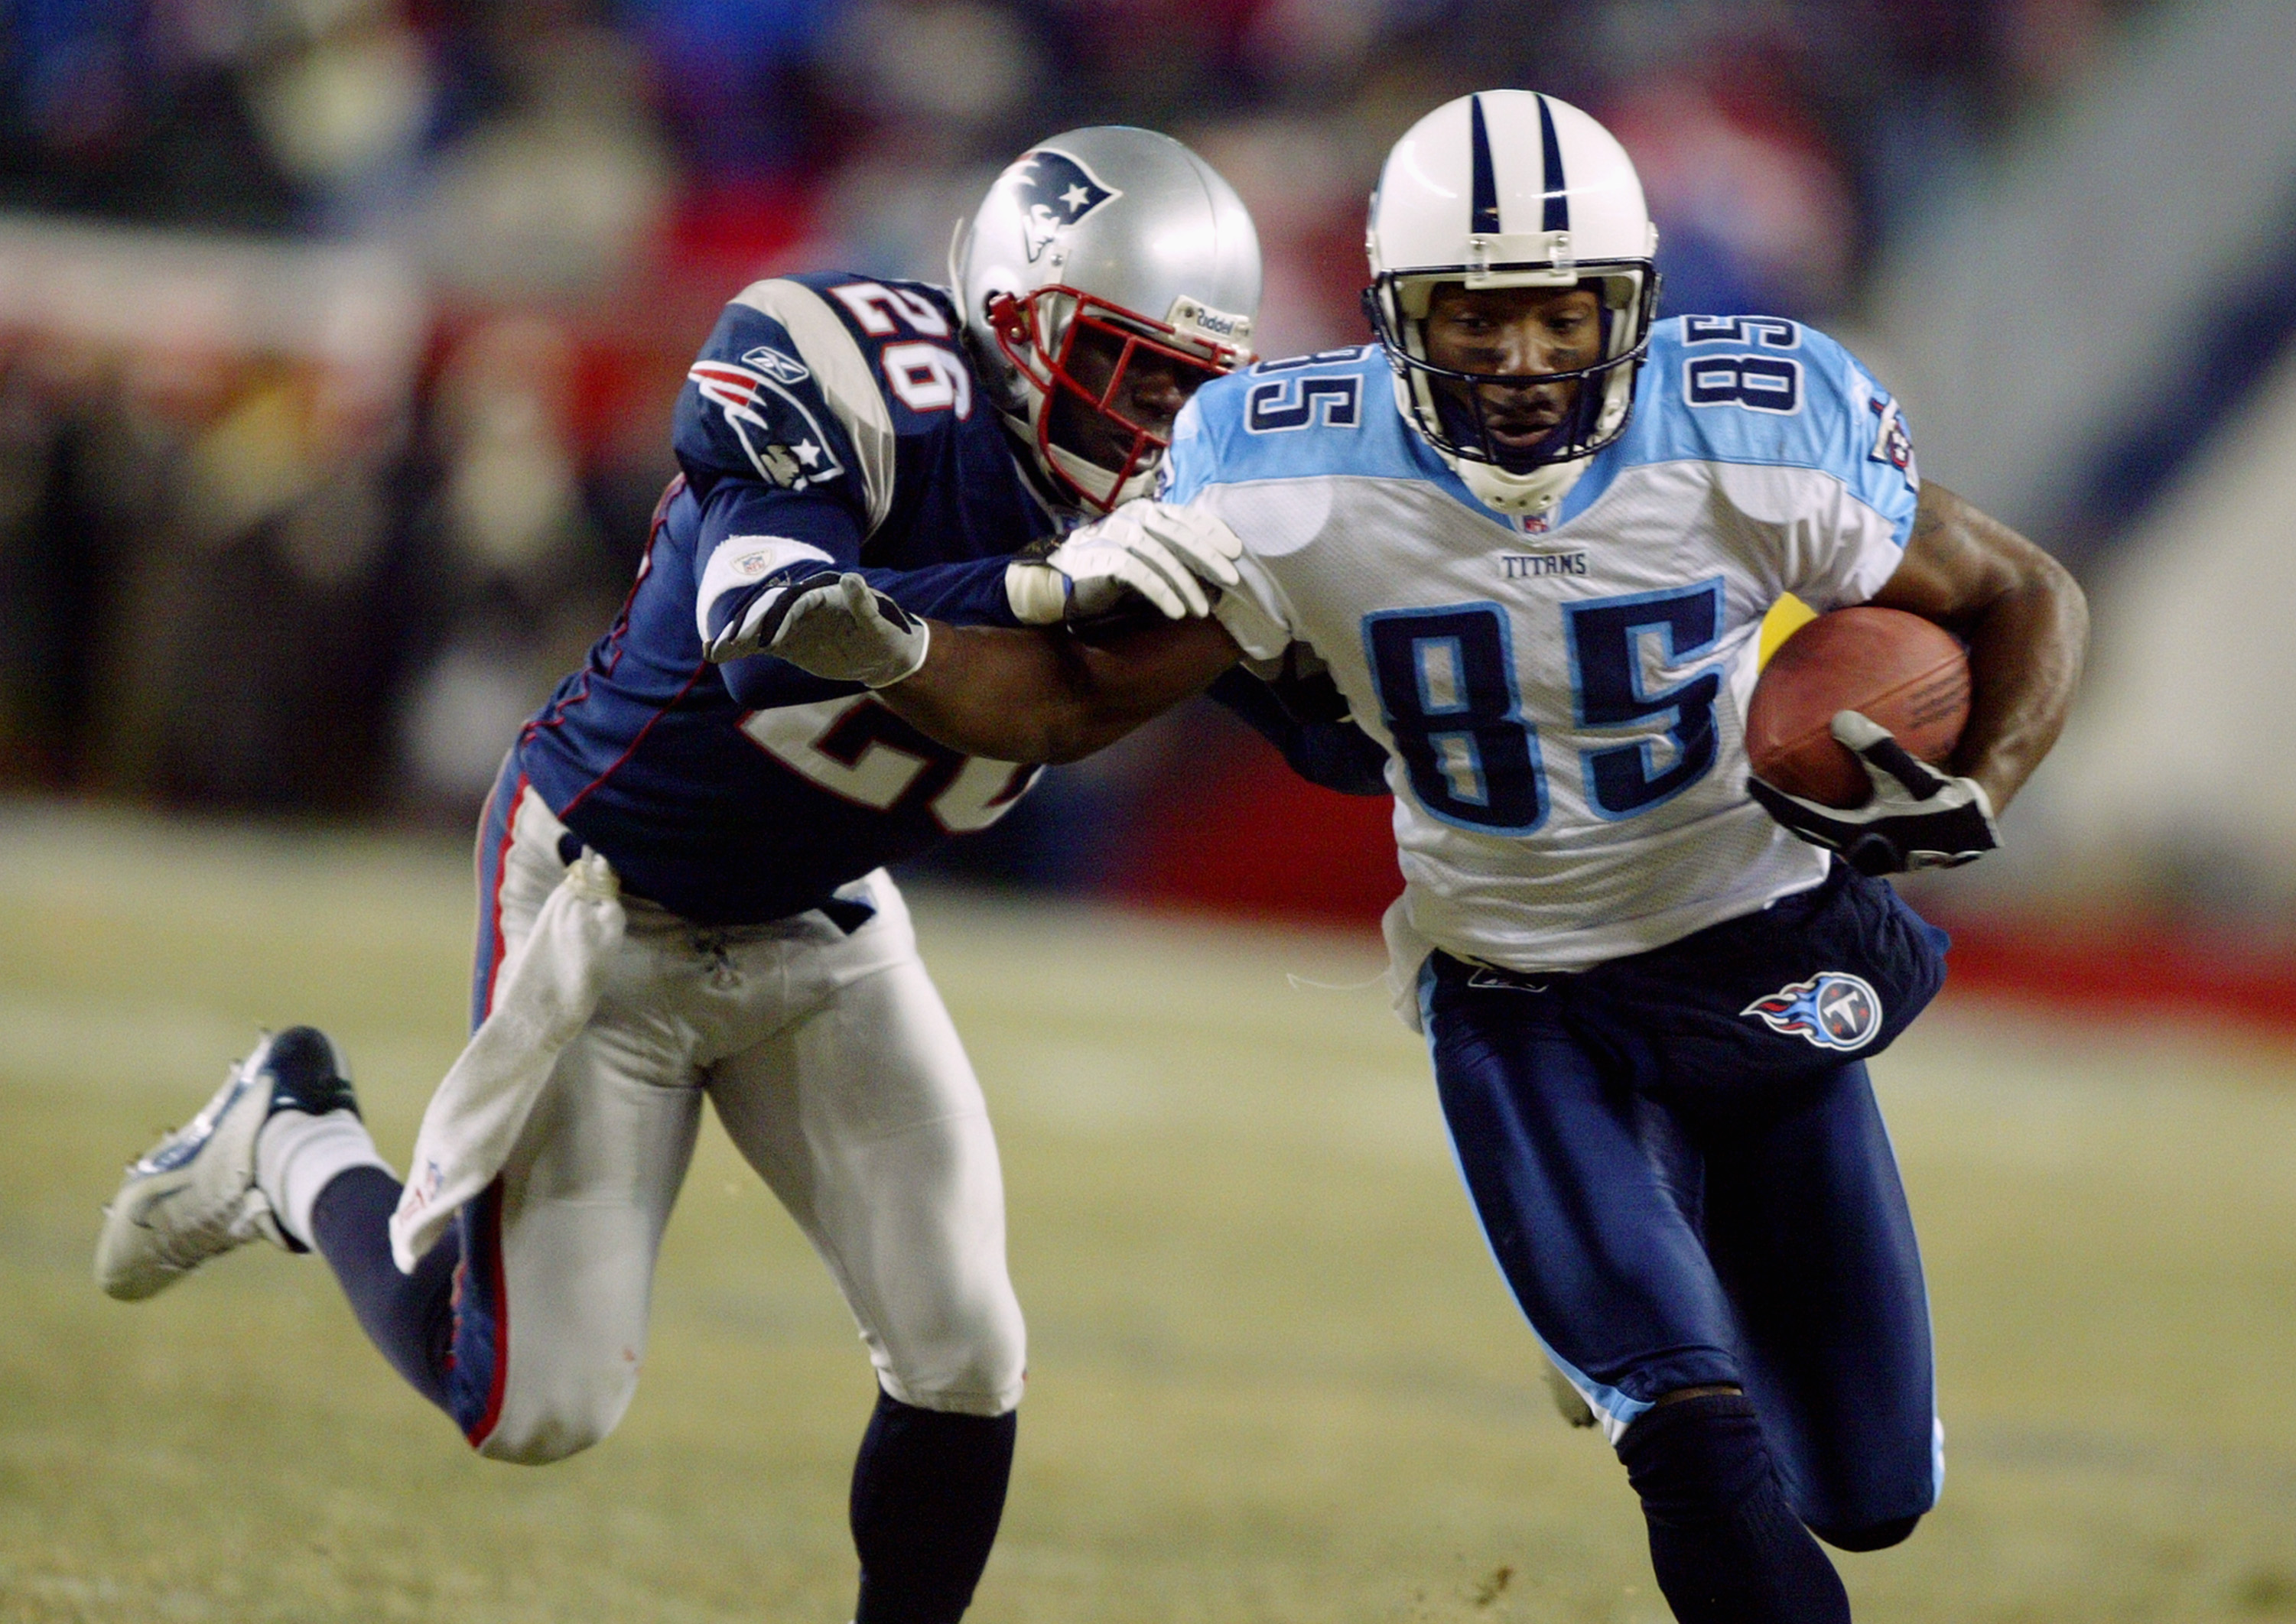 FOXBORO, MA - JANUARY 10:  Wide receiver Derrick Mason #85 of the Tennessee Titans tries to break a tackle by Eugene Wilson #85 of the New England Patriots in the AFC divisional playoffs on January 10, 2004 at Gillette Stadium in Foxboro, Massachusetts. T